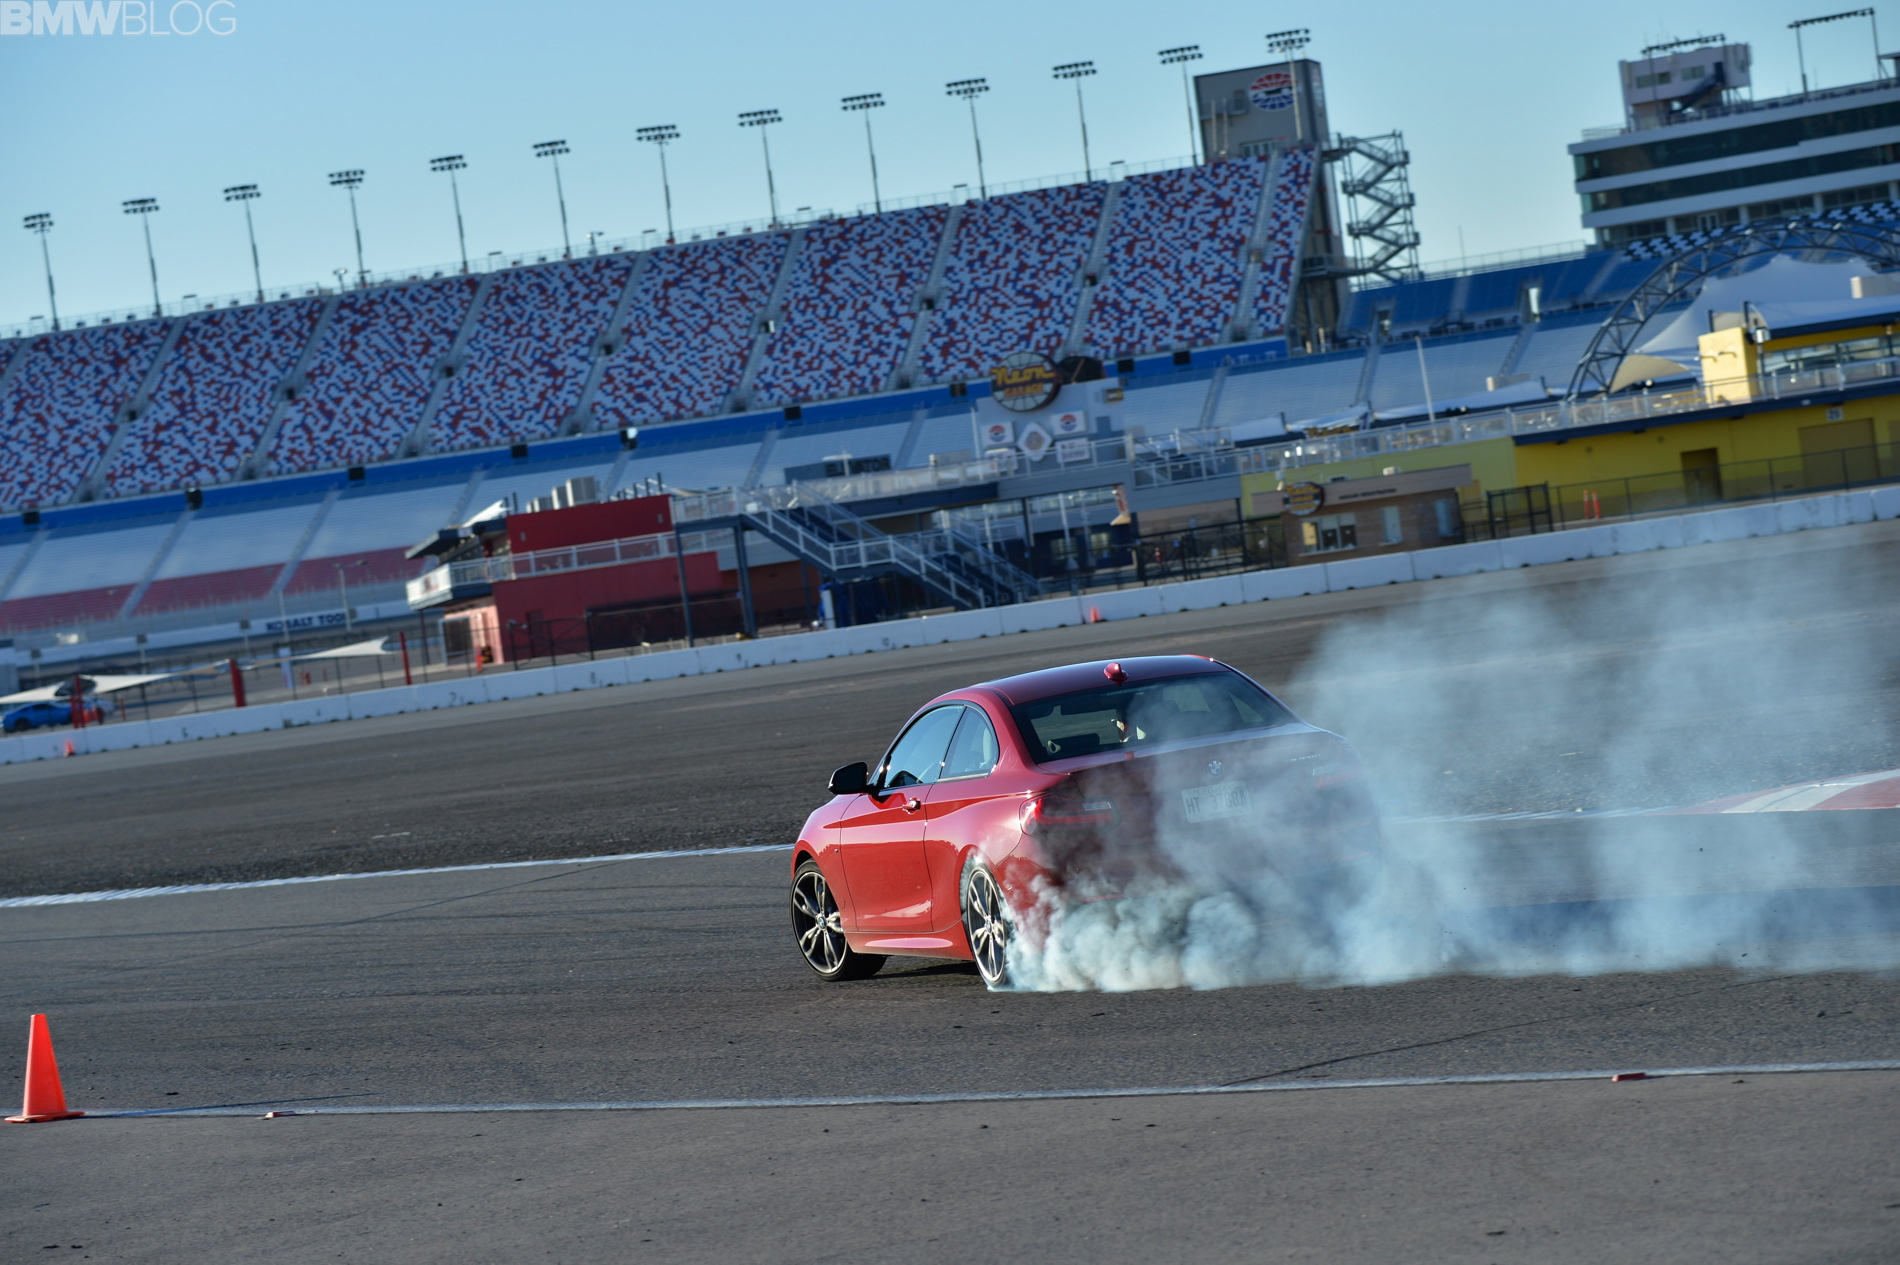 BMW's Ultimate Driving Experience: Nationwide Behind-the